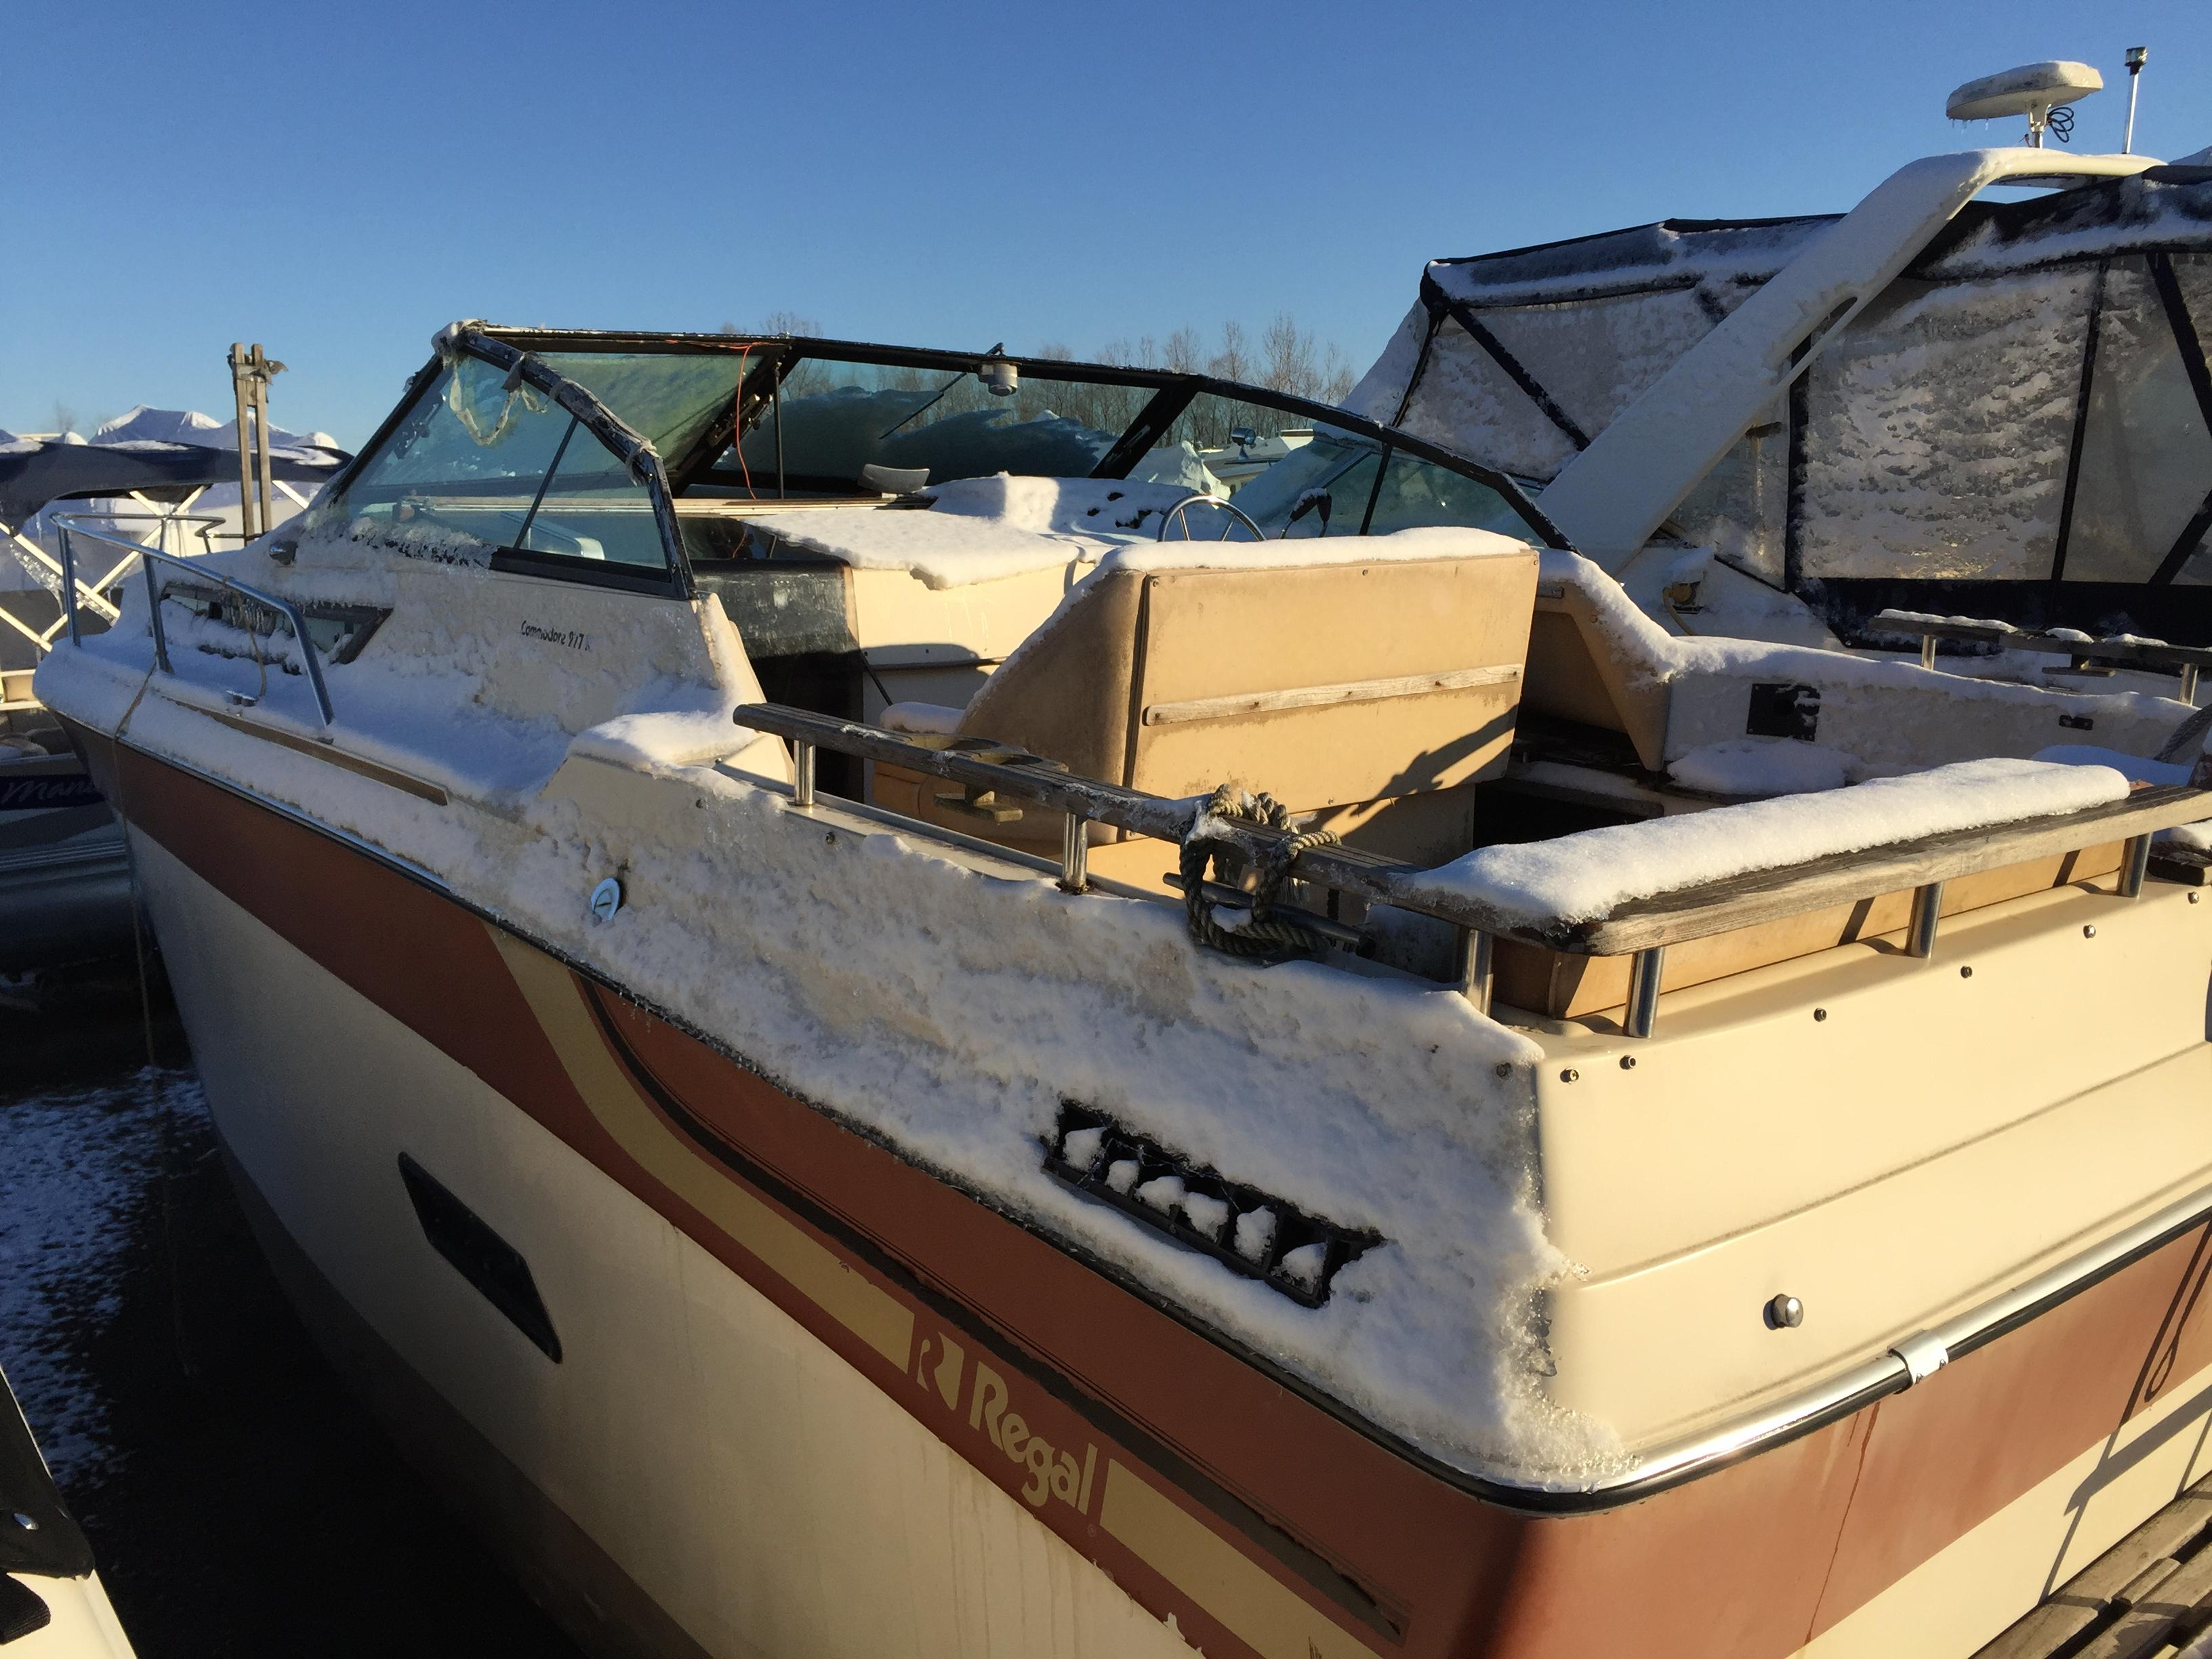 5461865_20151128141053131_1_XLARGE&w=3264&h=2448&t=1448748786000 1996 regal 322 commodore power boat for sale www yachtworld com Regal Commodore 402 at gsmx.co